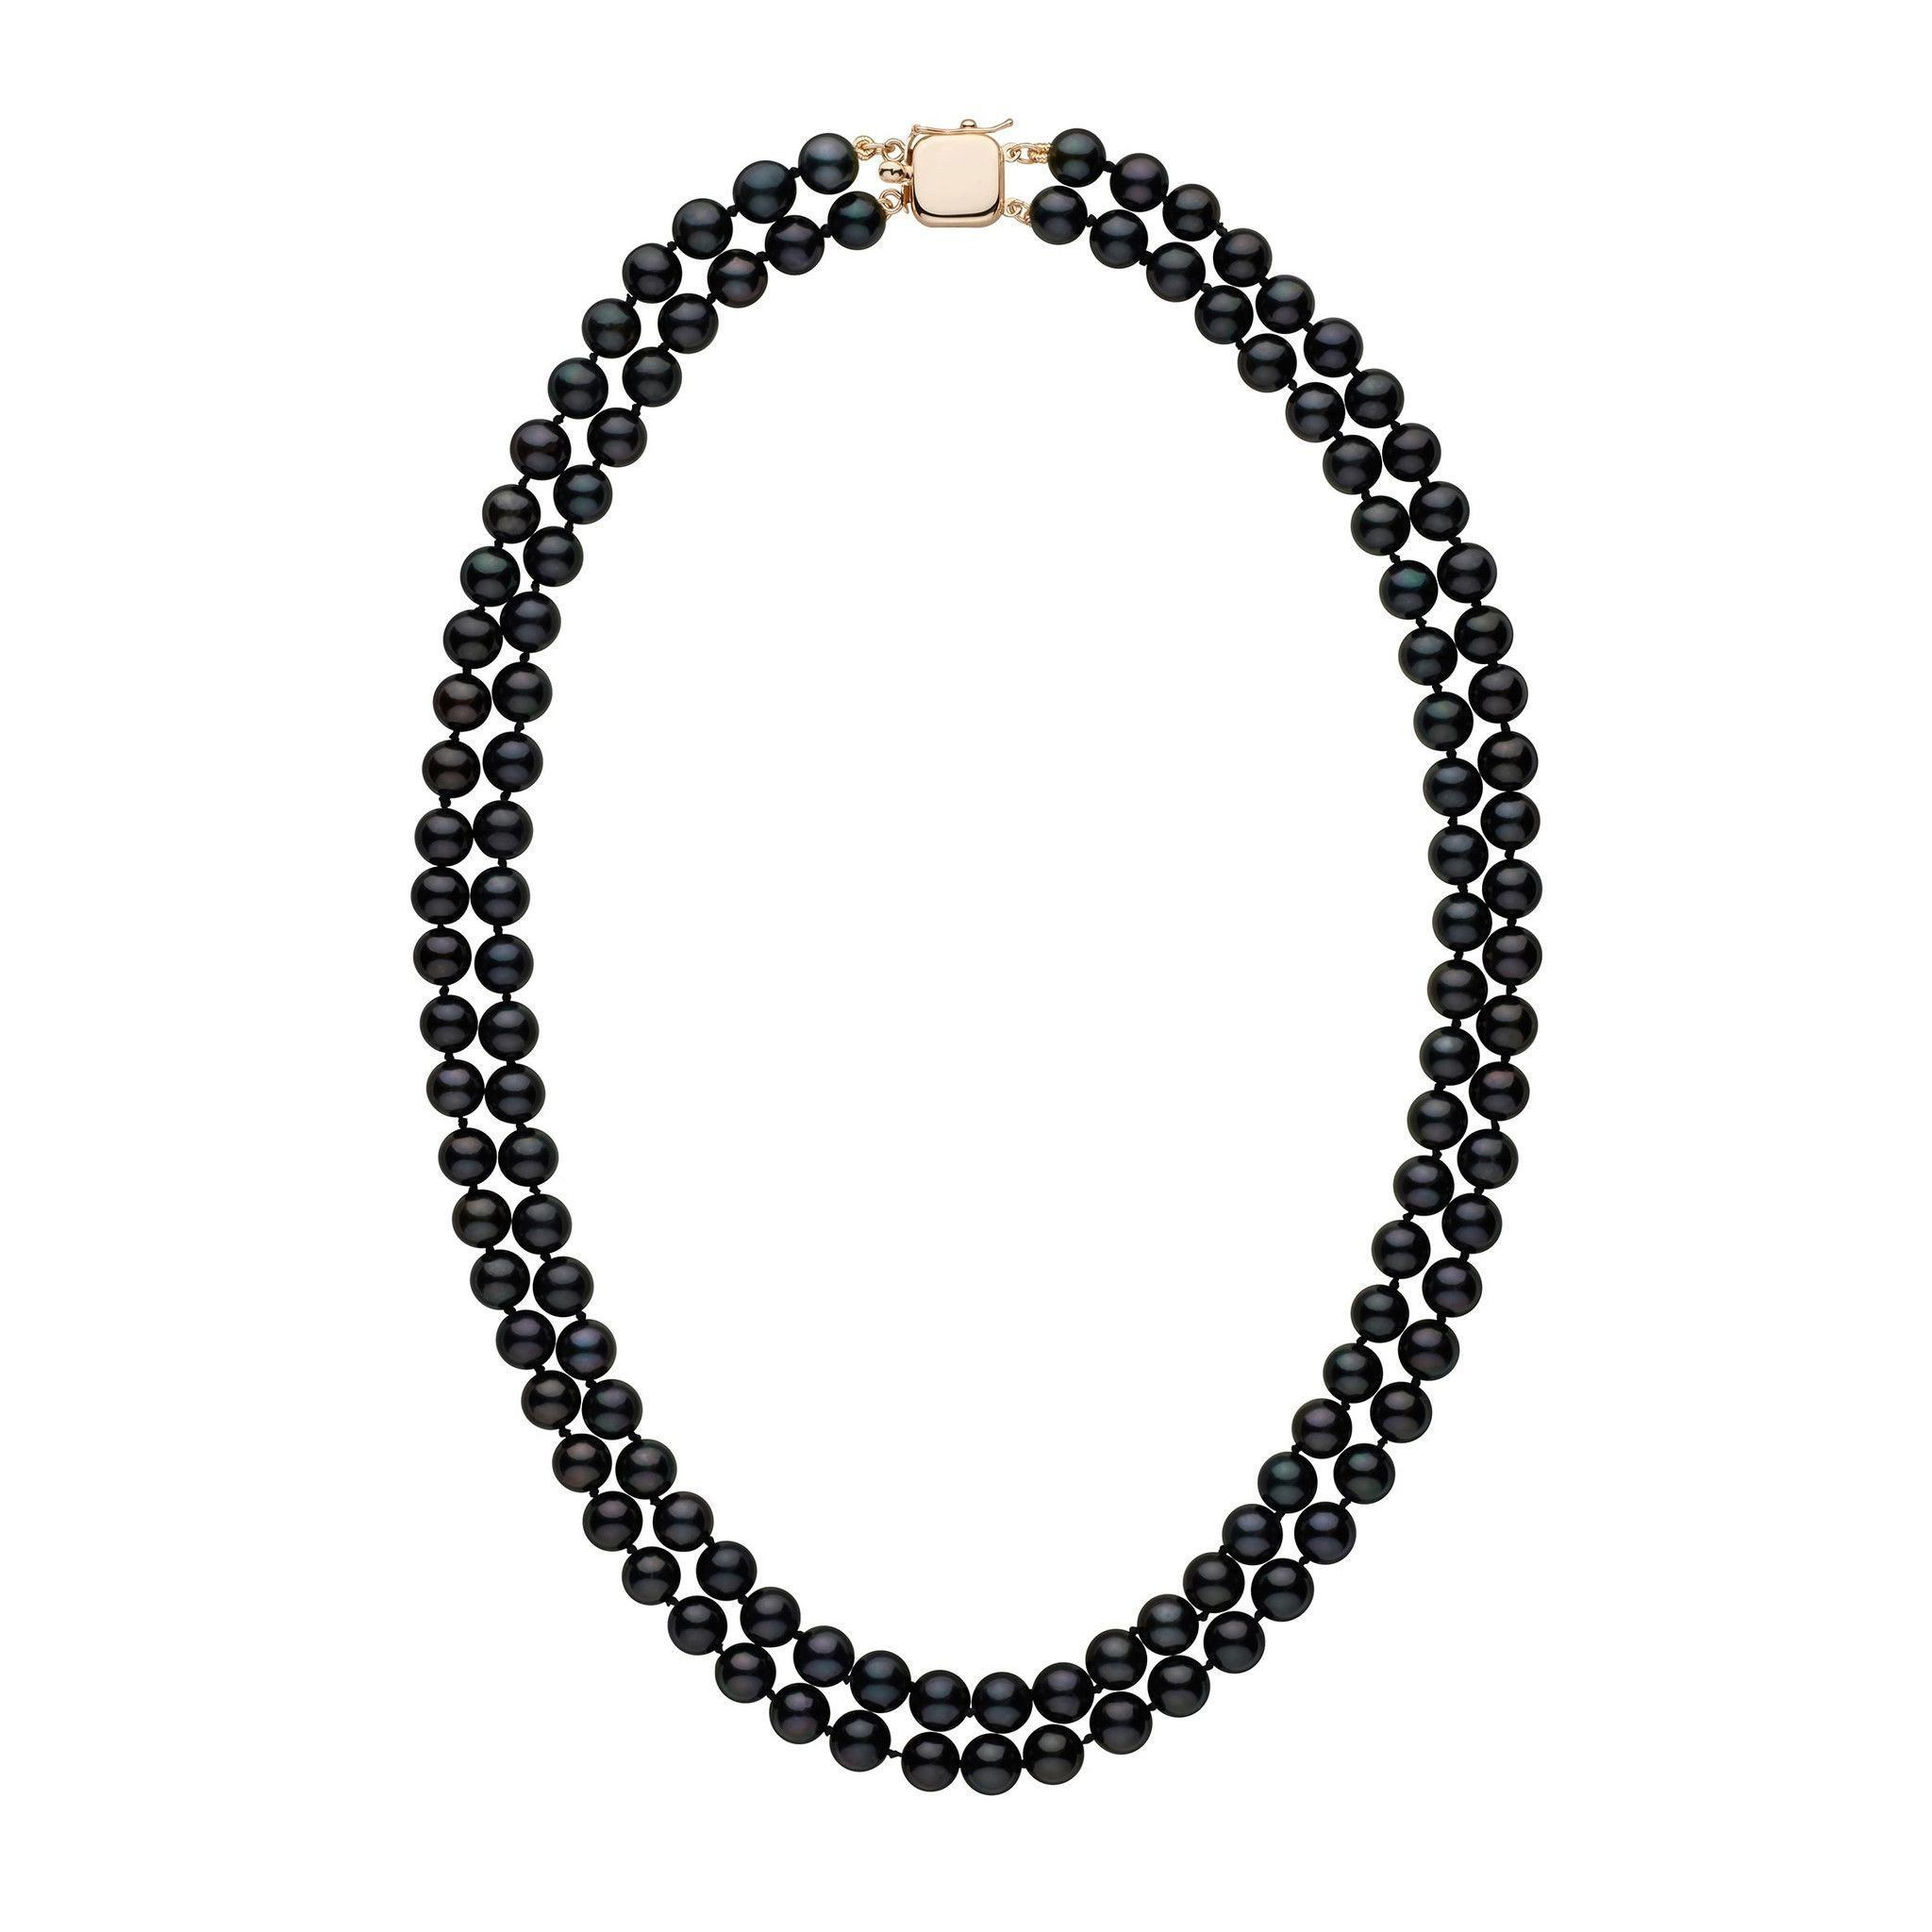 6.5-7.0 mm 18-inch Double-Strand Black Akoya Pearl Necklace